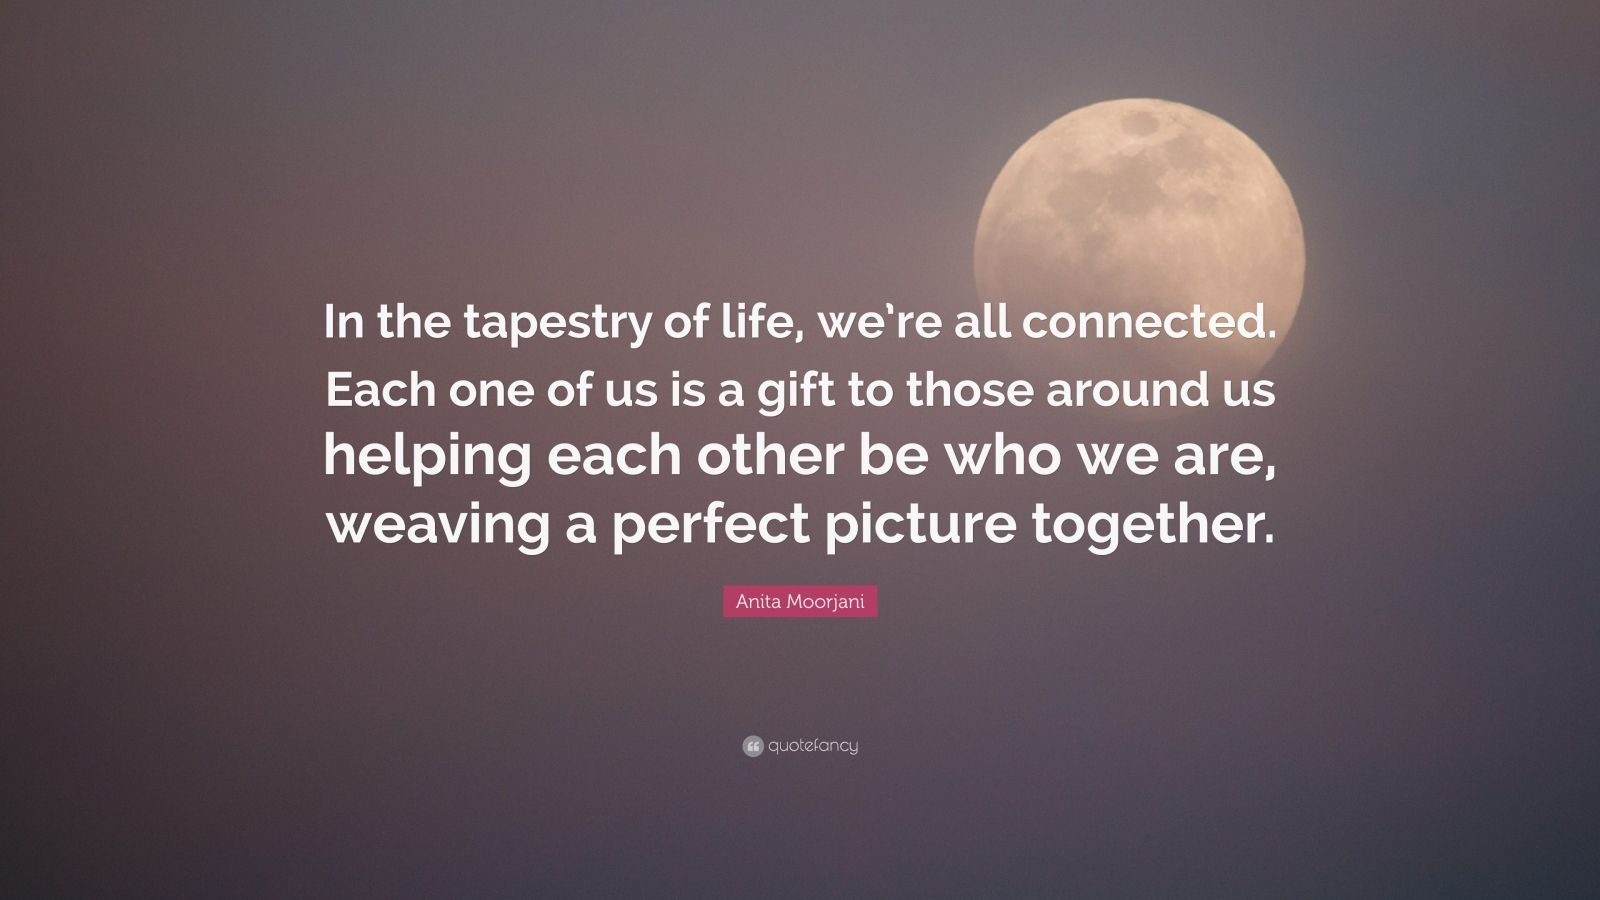 4778563-Anita-Moorjani-Quote-In-the-tapestry-of-life-we-re-all-connected